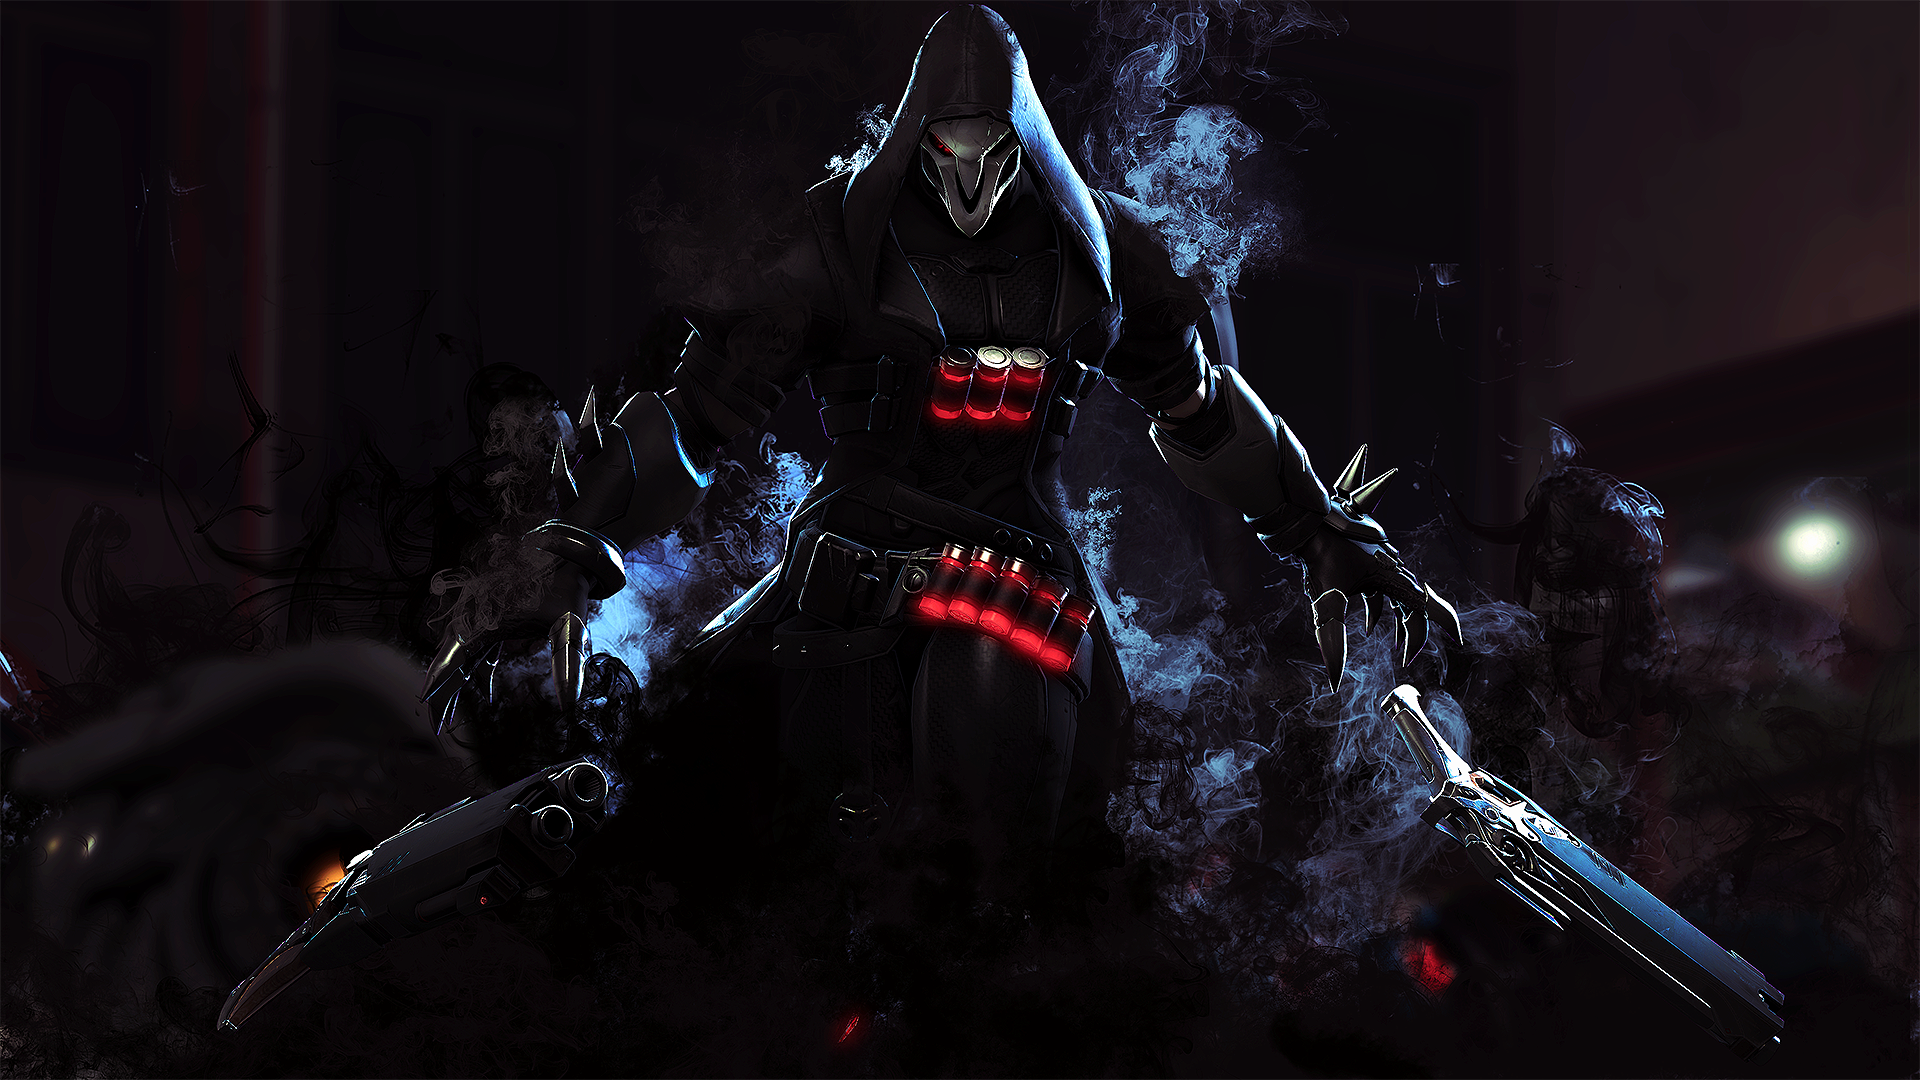 Video Game Overwatch Reaper Overwatch Wallpaper Overwatch Wallpapers Overwatch Reaper Overwatch